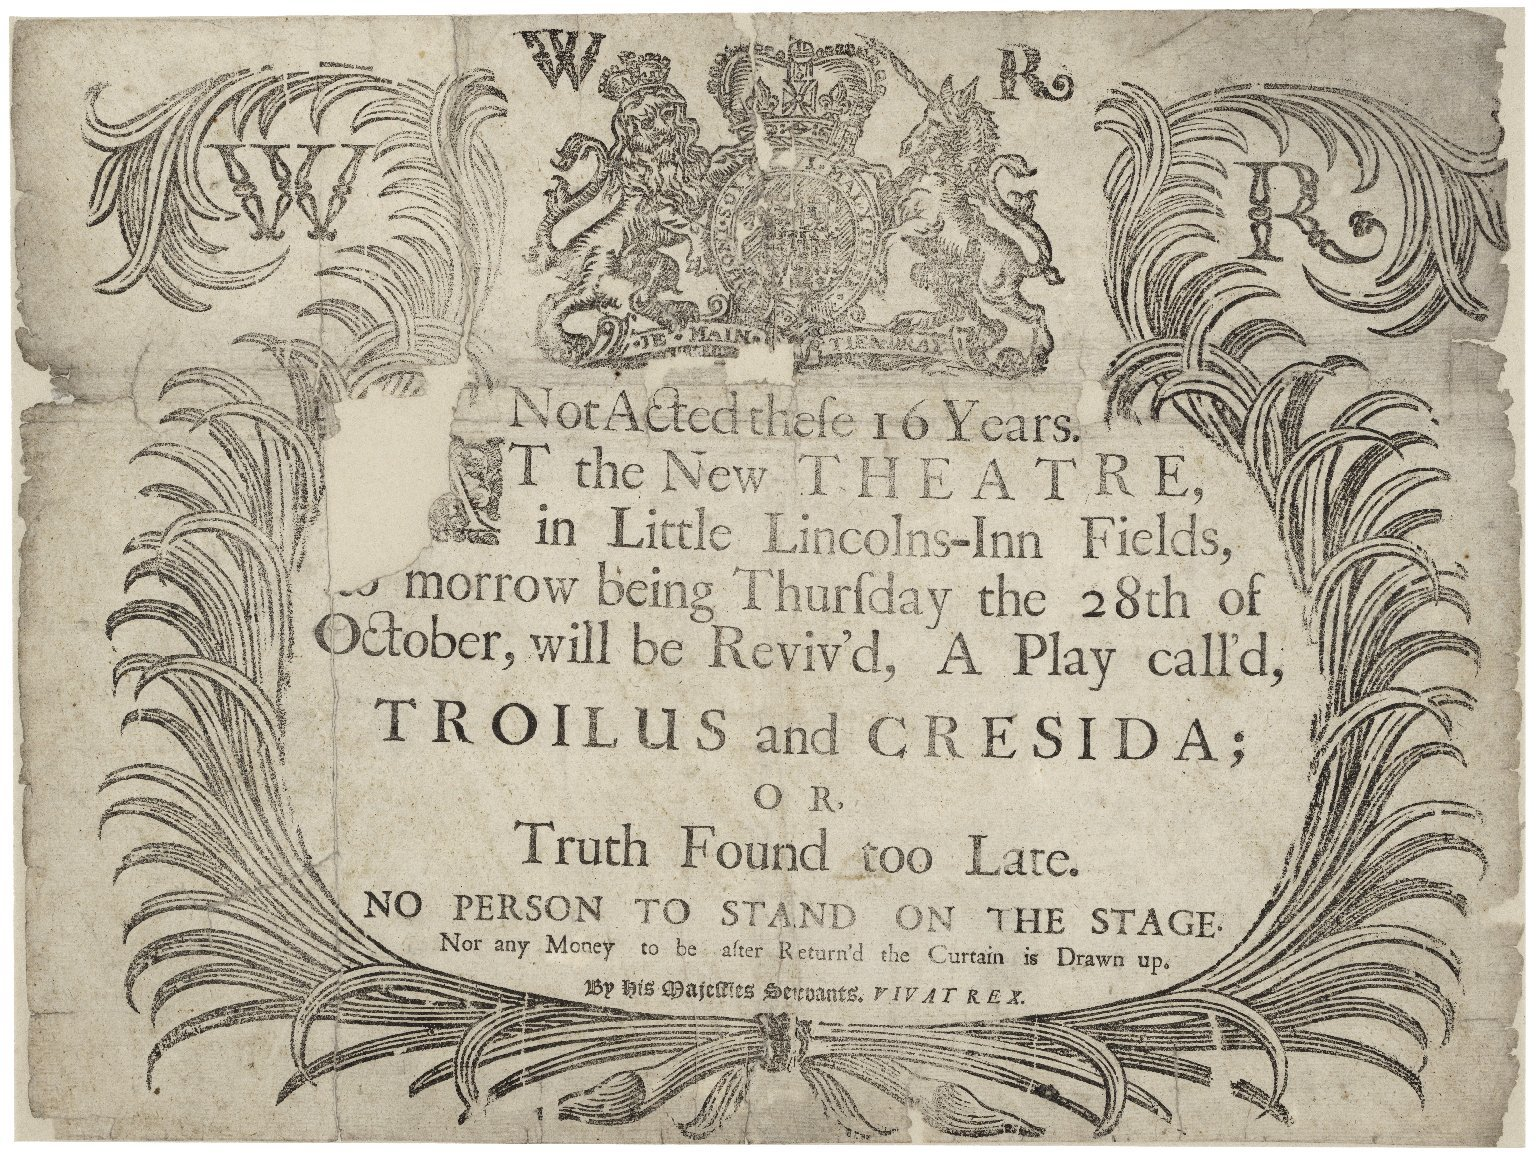 Troilus and Cressida playbill. Lincoln's Inn Fields, 1697. Folger Shakespeare Library.